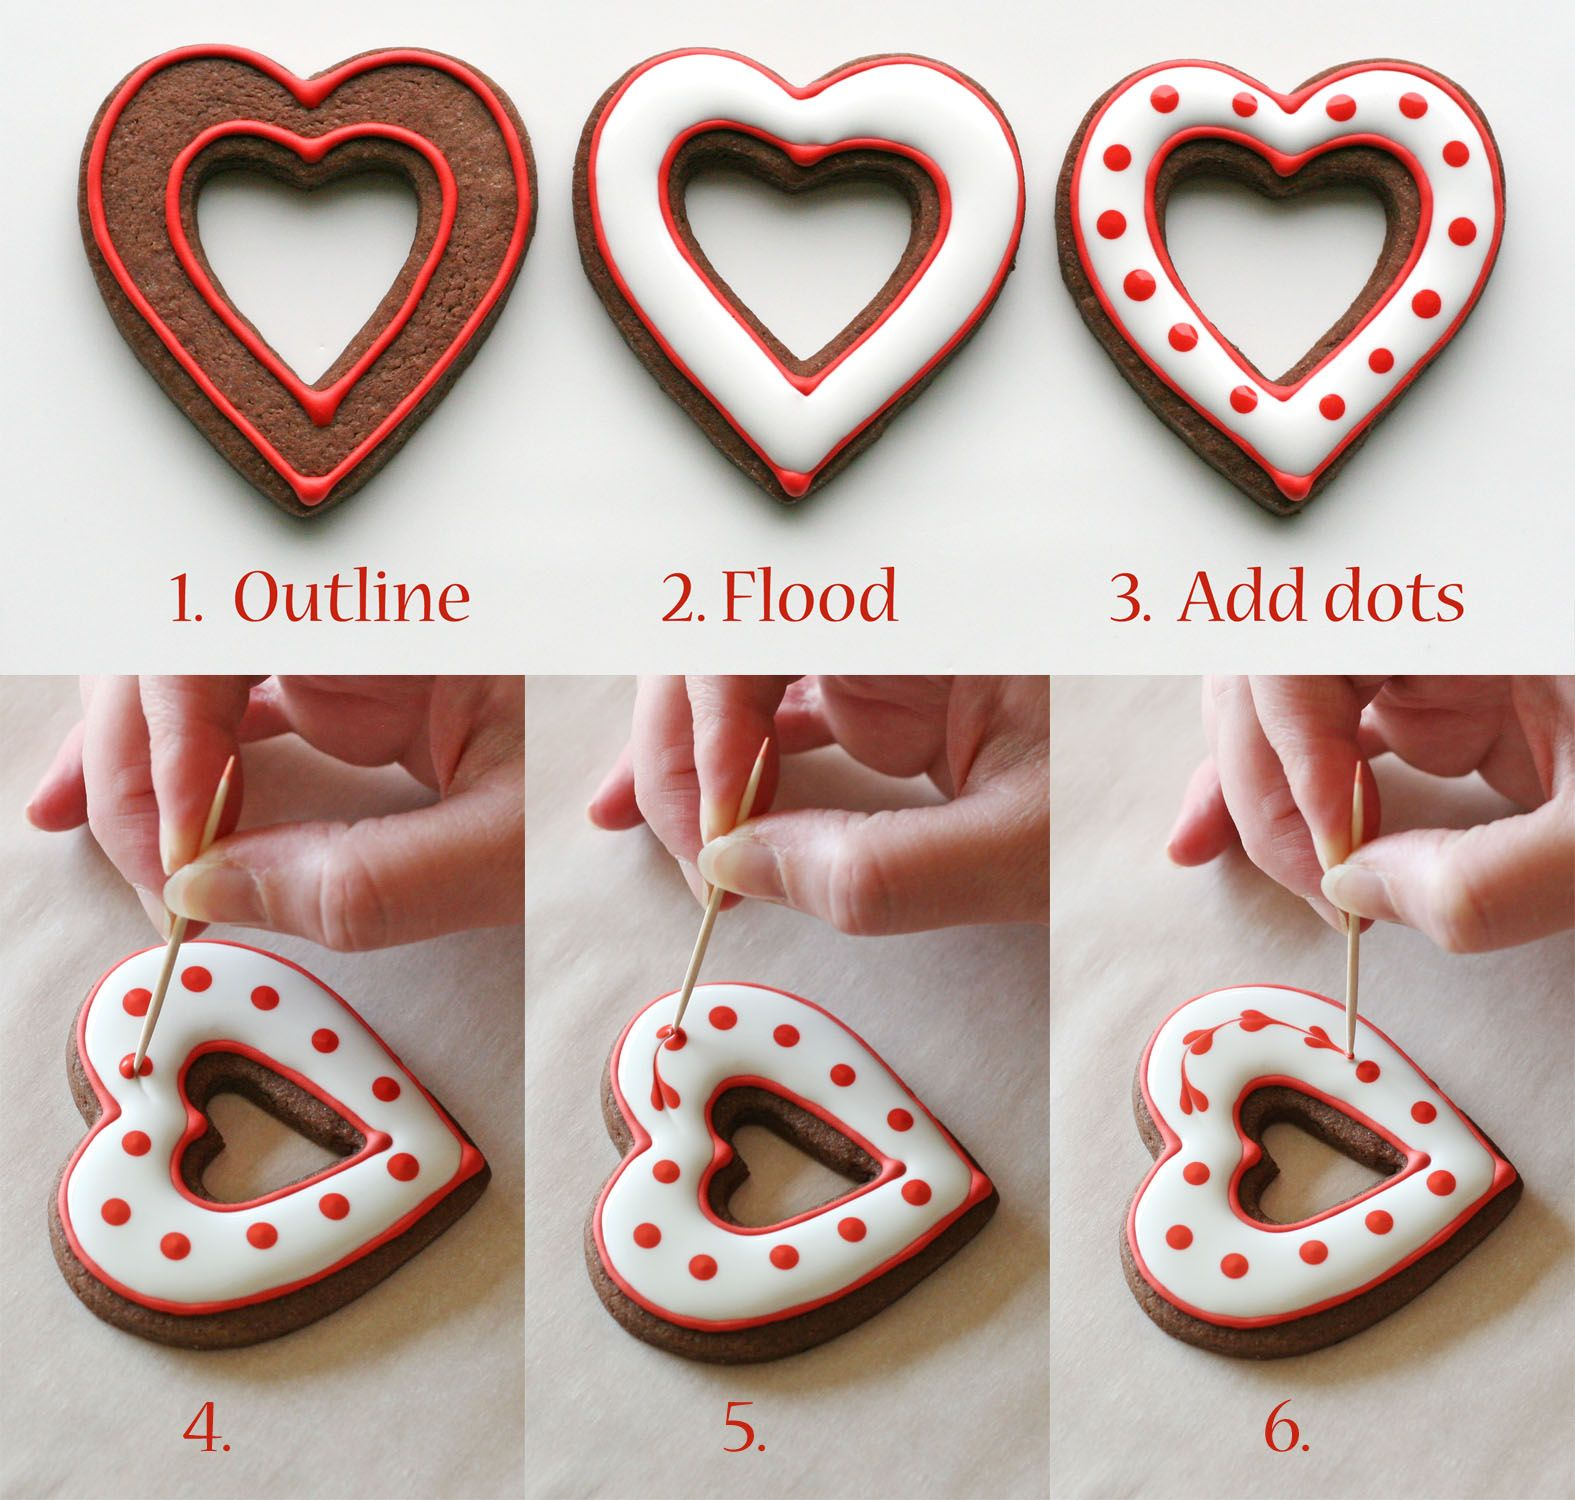 simple heart valentines cookies decorating how to - Decorated Valentine Cookies